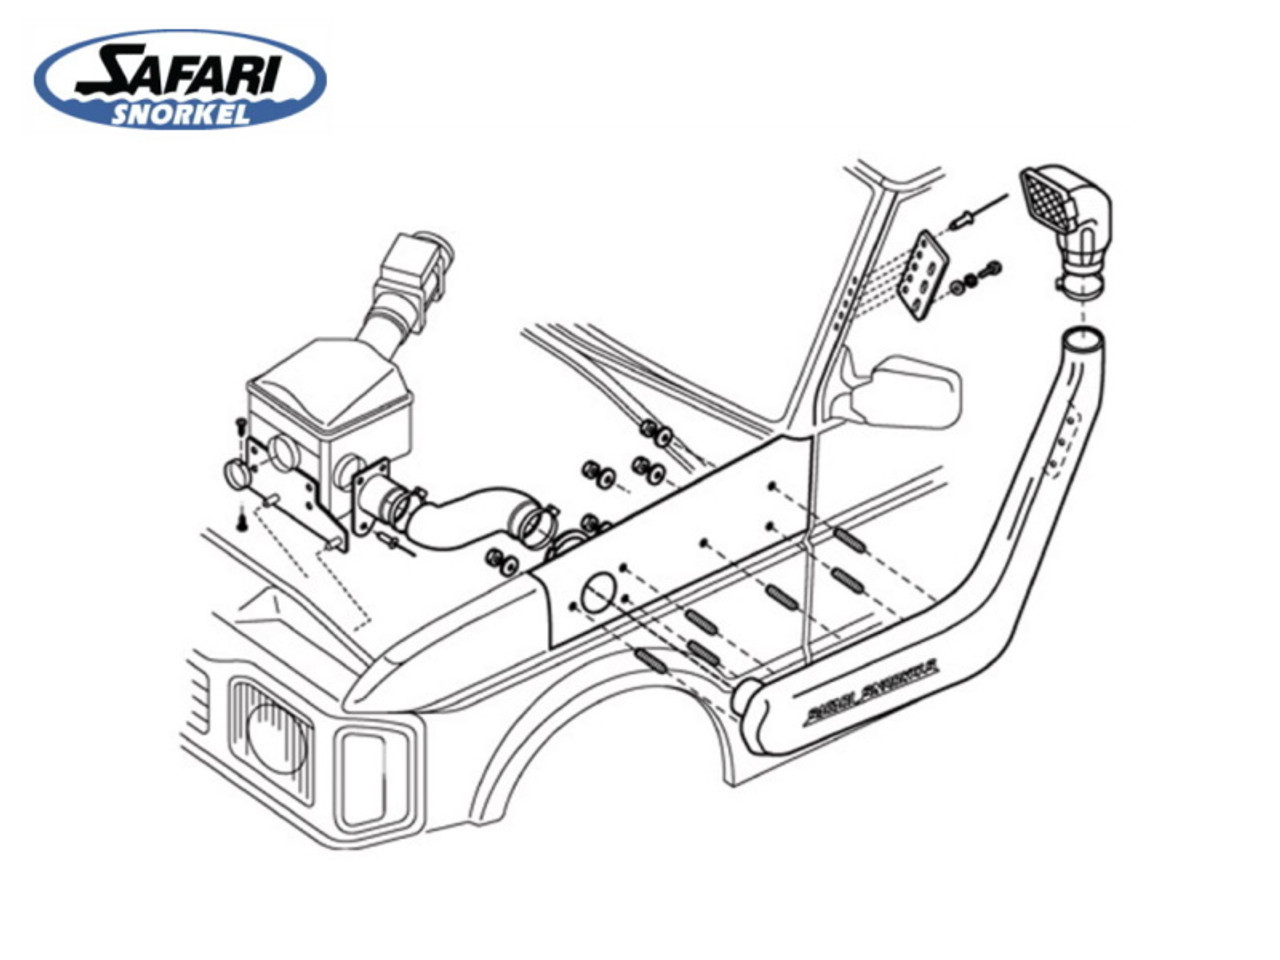 Safari Raised Air Snorkel For Discovery 1 300Tdi and 1994 Onwards V8 With ABS